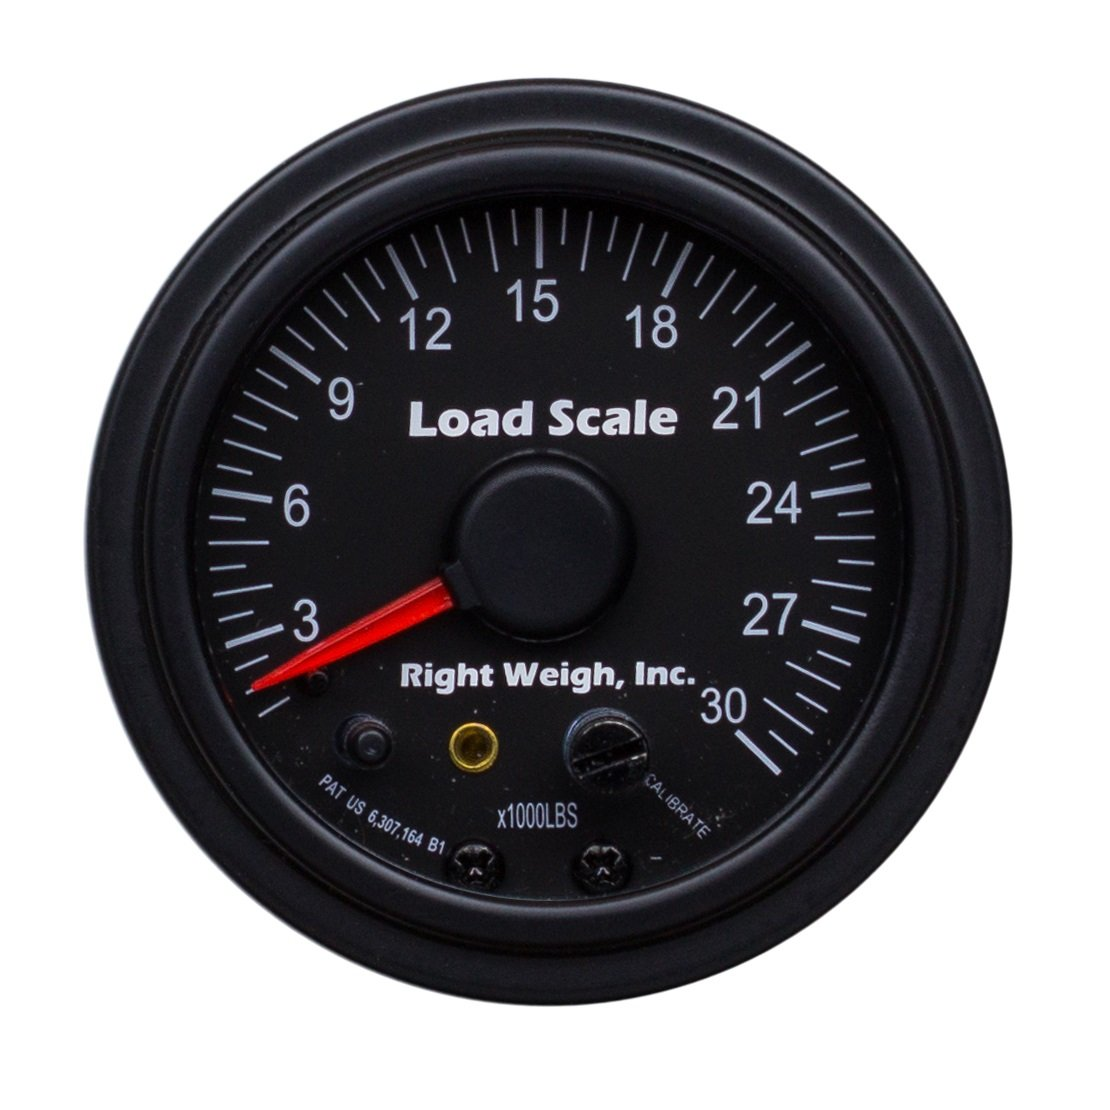 510-30-B Interior Analog Onboard Load Scale - for Single Axle Air Suspensions with One Height Control Valve - 7 Color LED